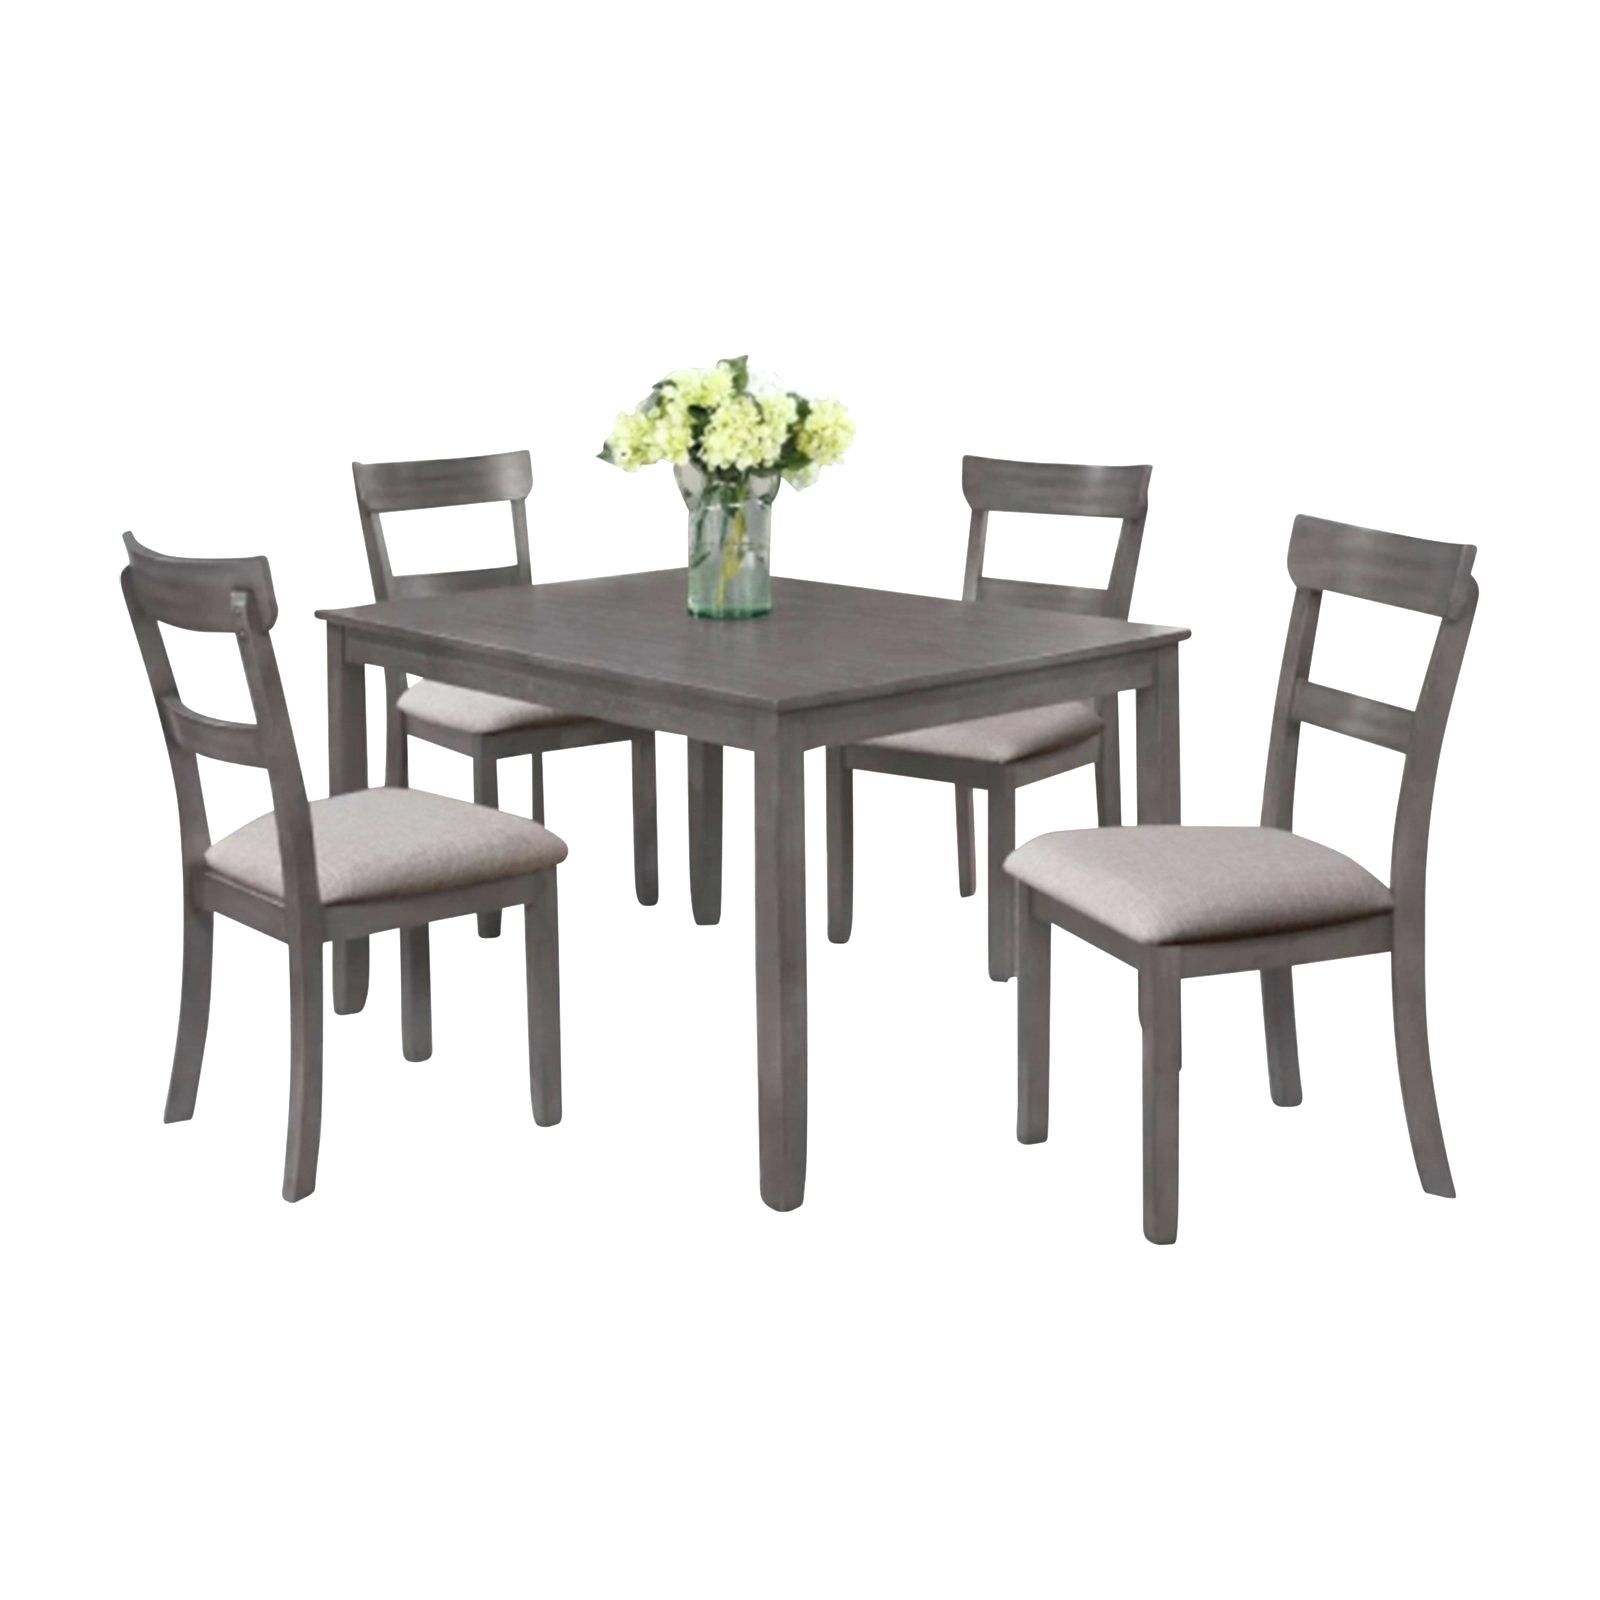 White And Gray Dining Table – Insidestories With Regard To Most Up To Date Gray Wash Banks Pedestal Extending Dining Tables (View 9 of 25)